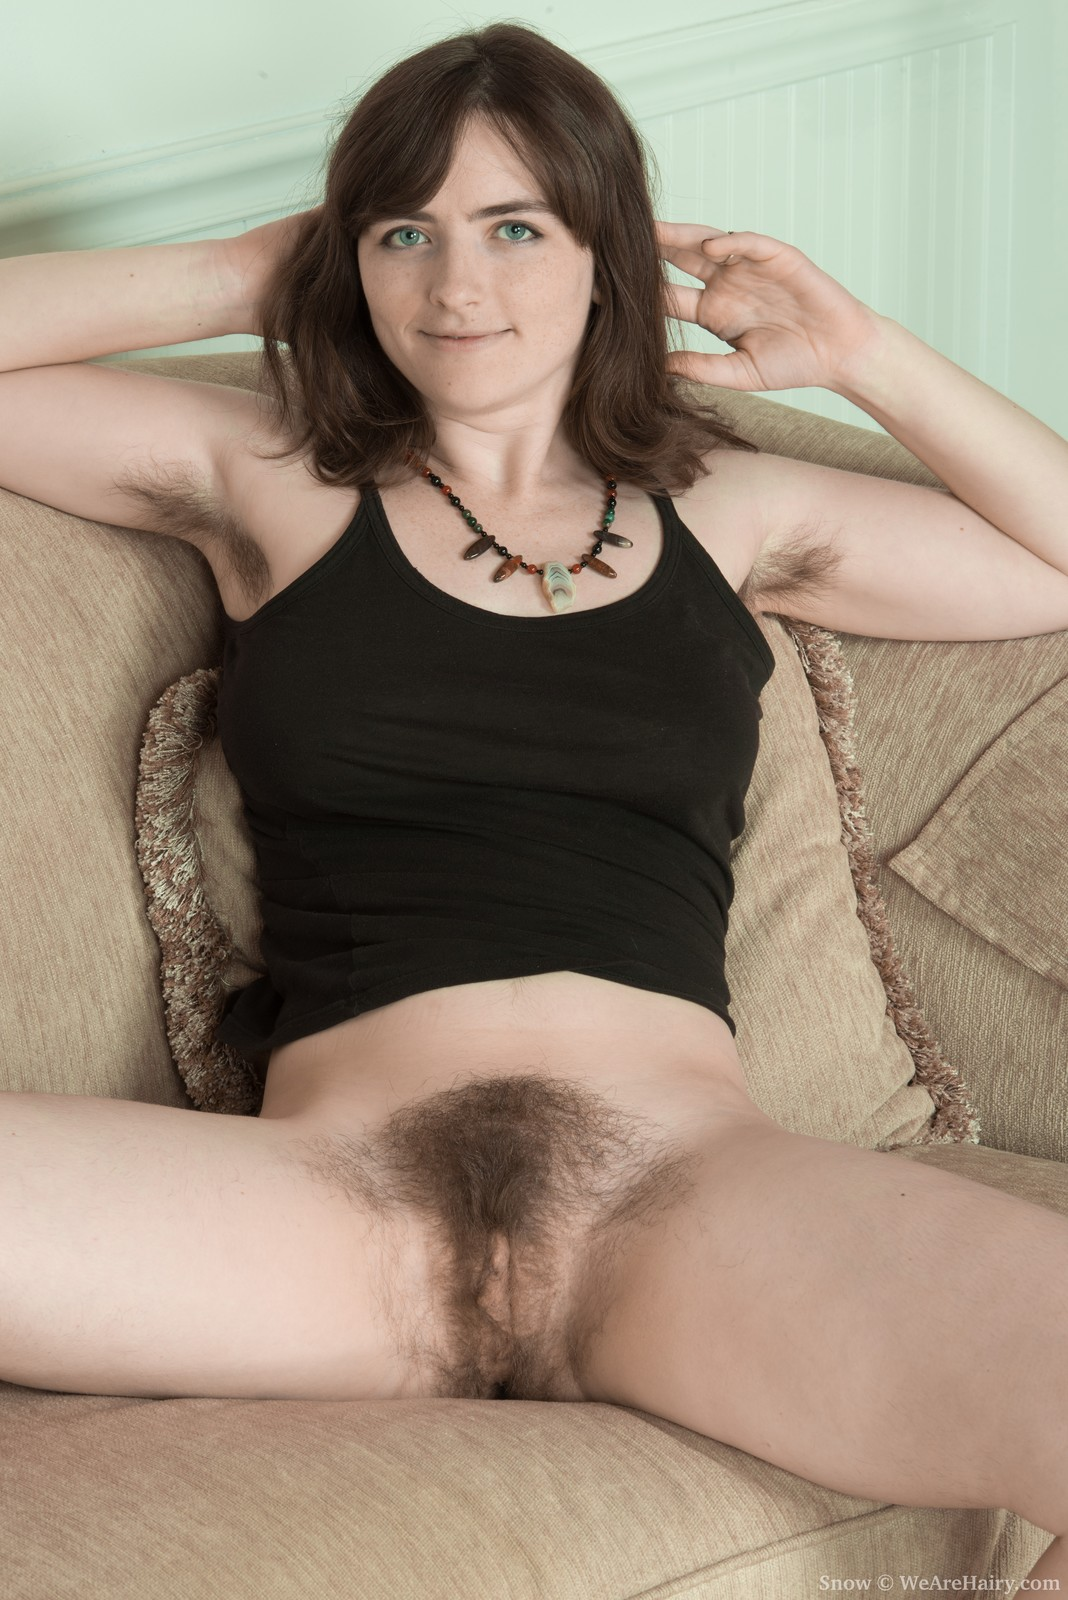 The Hairy Lady Blog - Amateur Teen Girls and Mature Lady ...